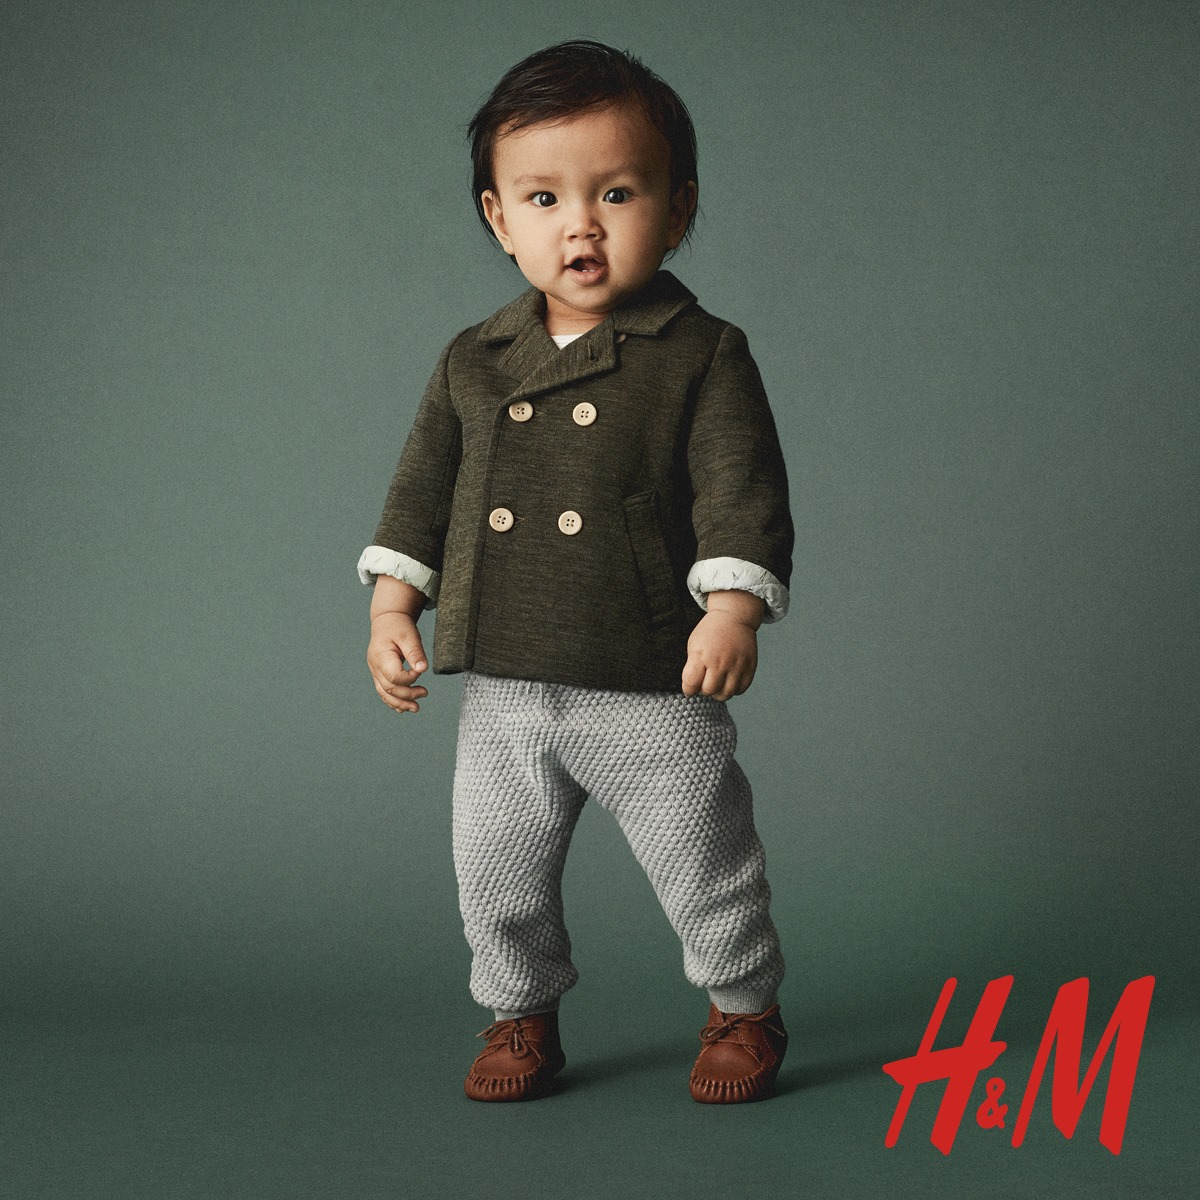 Find H&M kids bedding at ShopStyle. Shop the latest collection of H&M kids bedding from the most popular stores - all in one place.